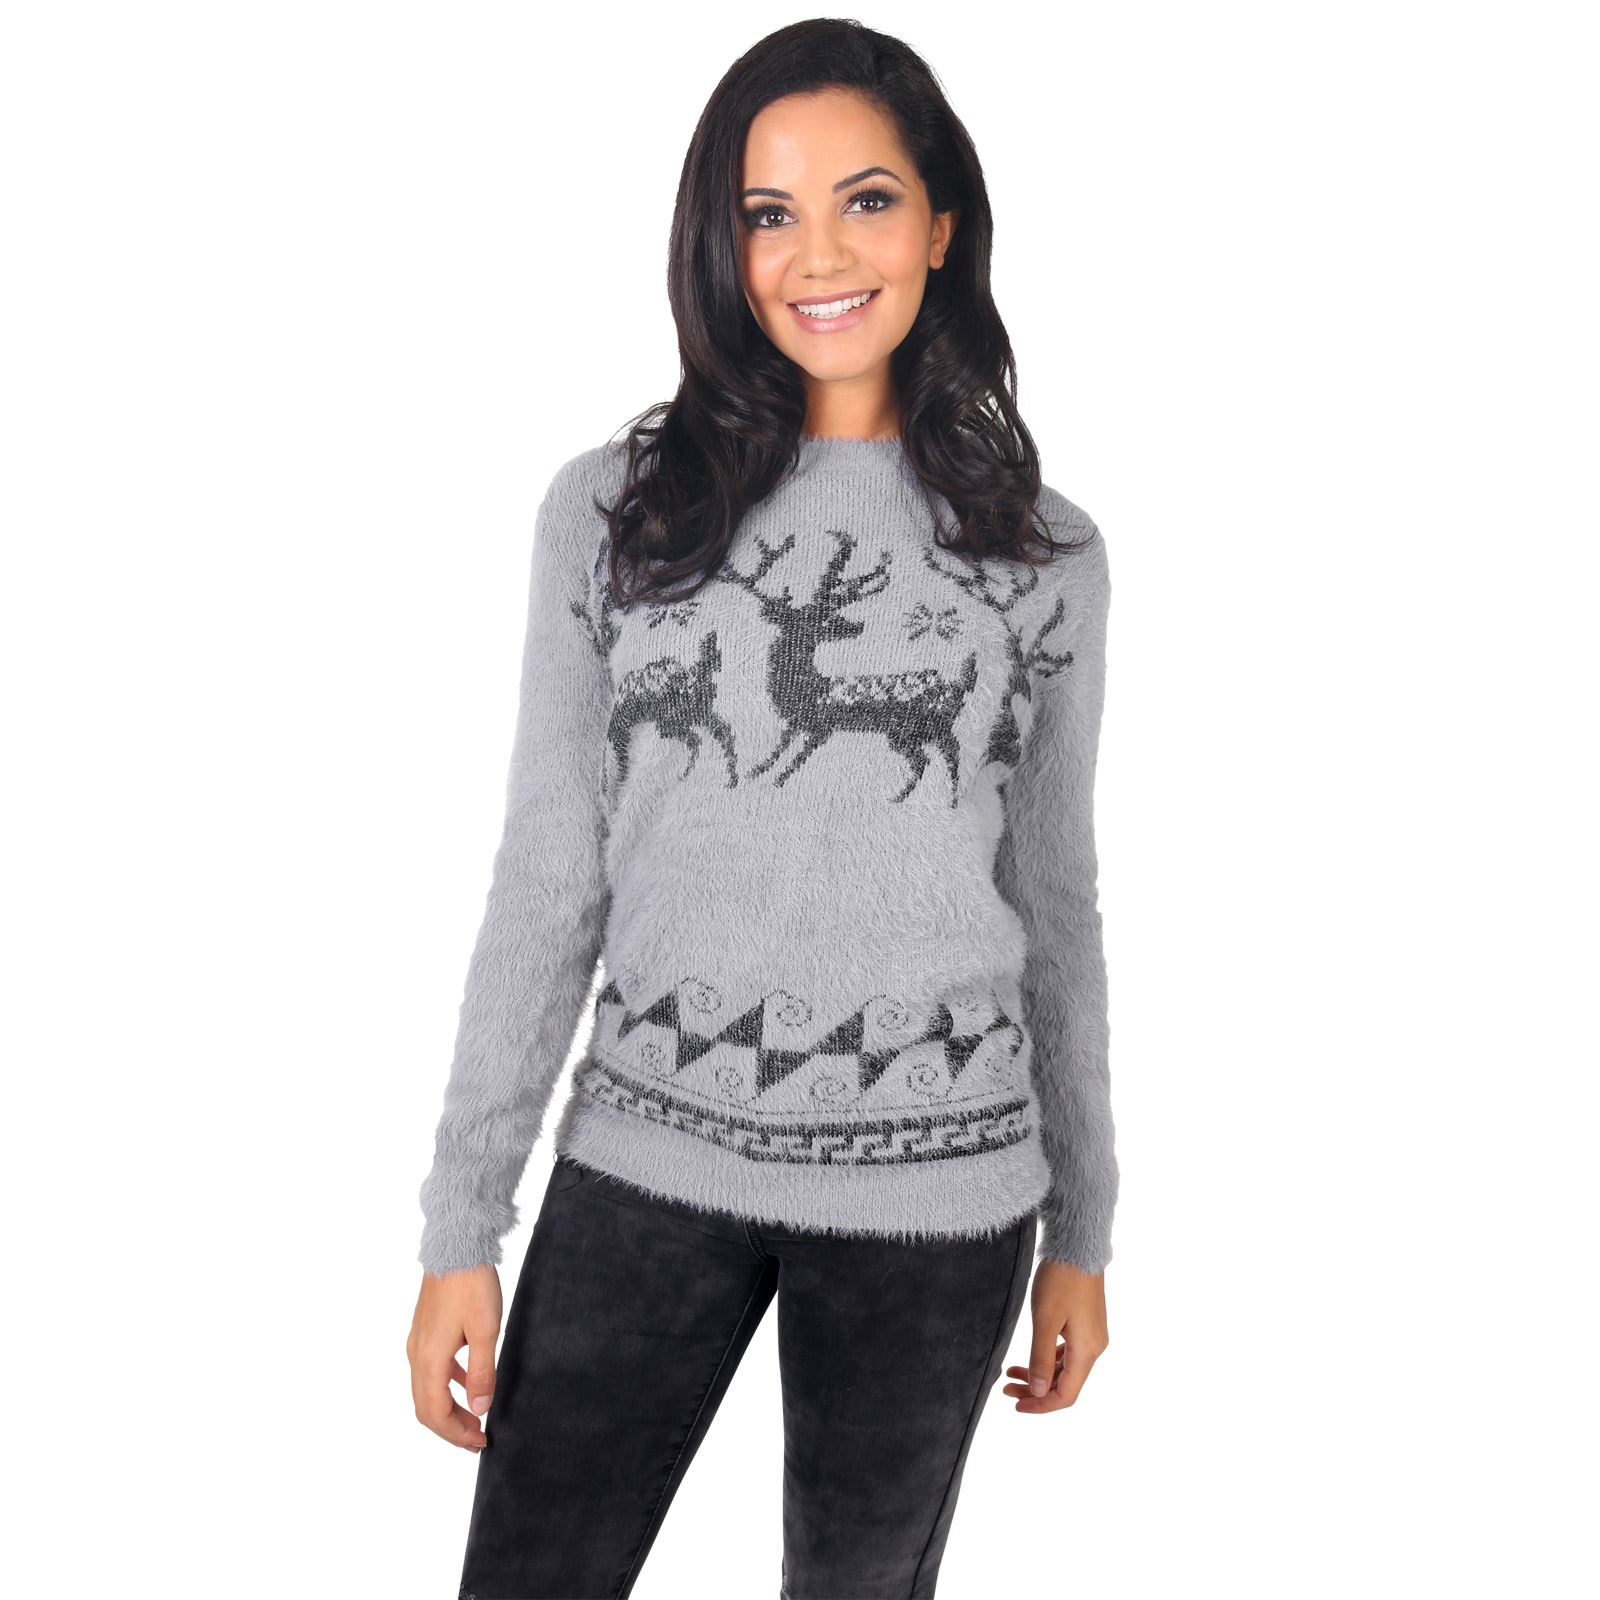 Women's Ugly Christmas Sweaters. Looking for a women's ugly Christmas sweater? Check out our stunning pics of the sweater-wearing beauties! And guys, if your wife or girlfriend catches you staring way too long just claim you're picking out a sweater for her and you want to ensure the details are correct!